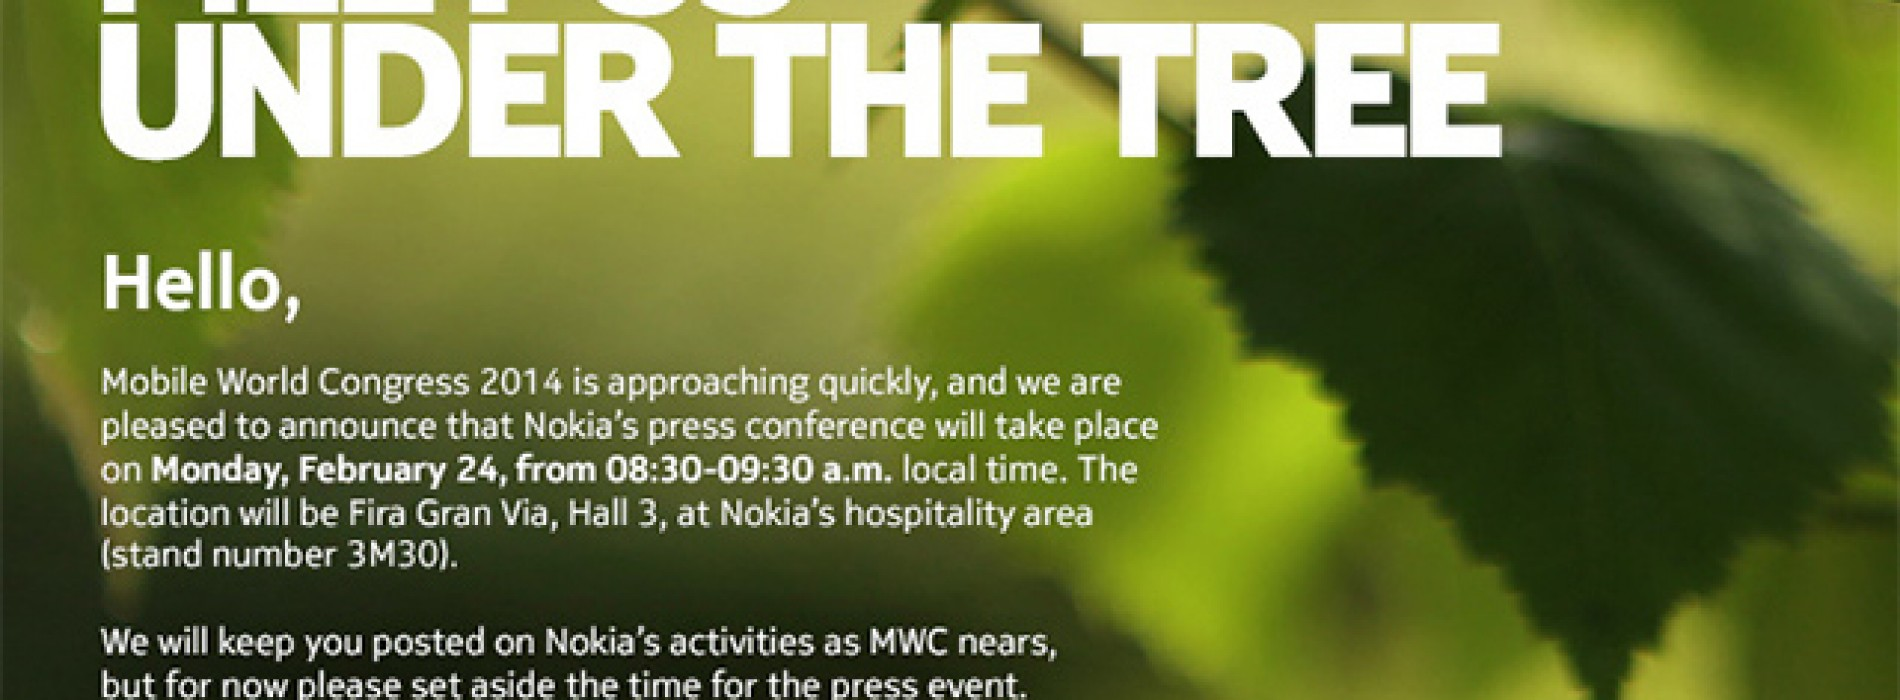 Nokia's Mobile World Congress event could be long-awaited foray into Android